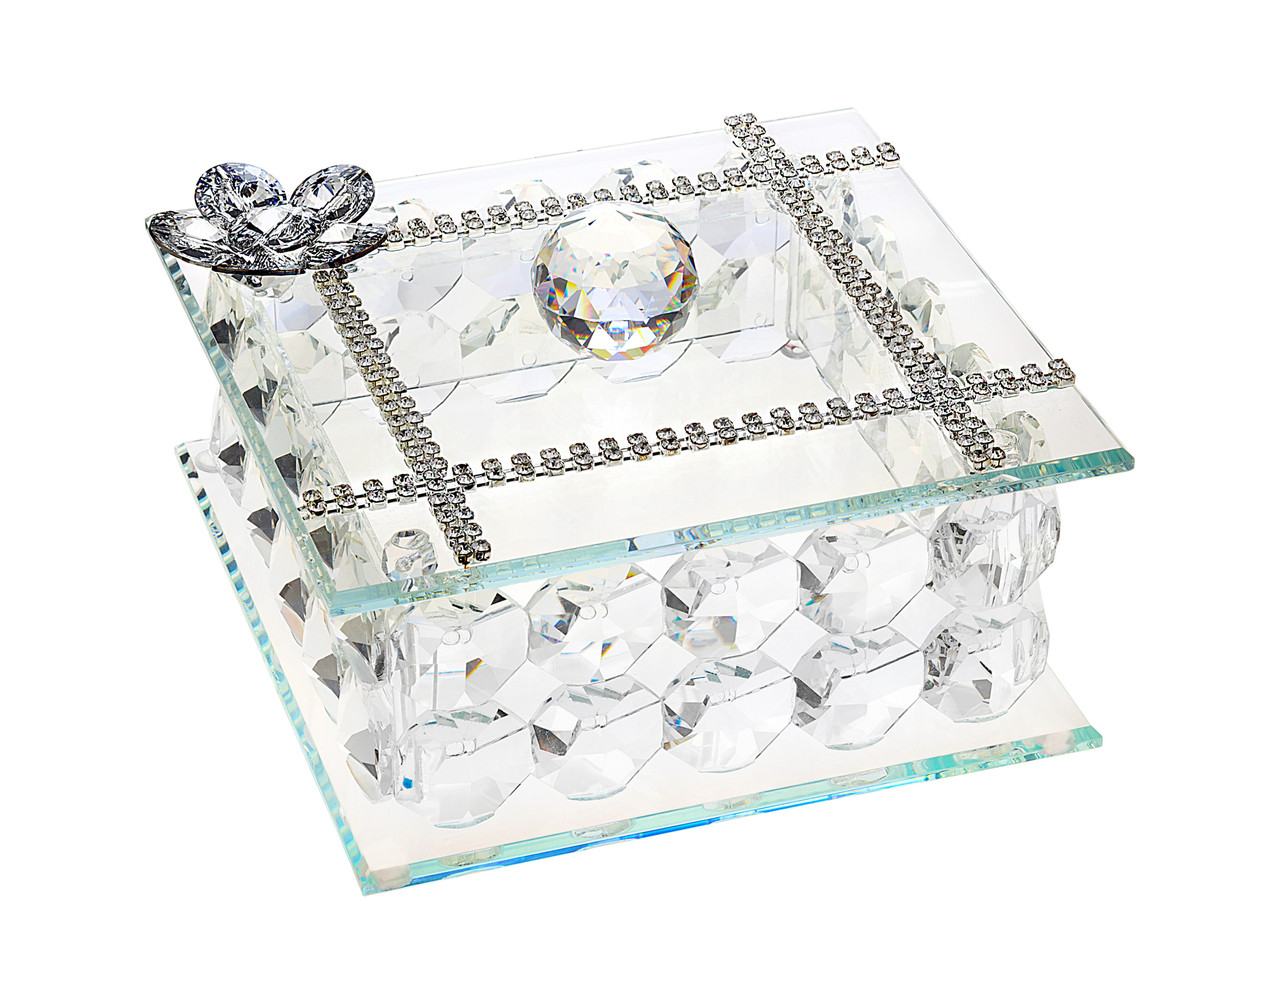 Silver Jewelry Box Wedding Gifts I5thavstore